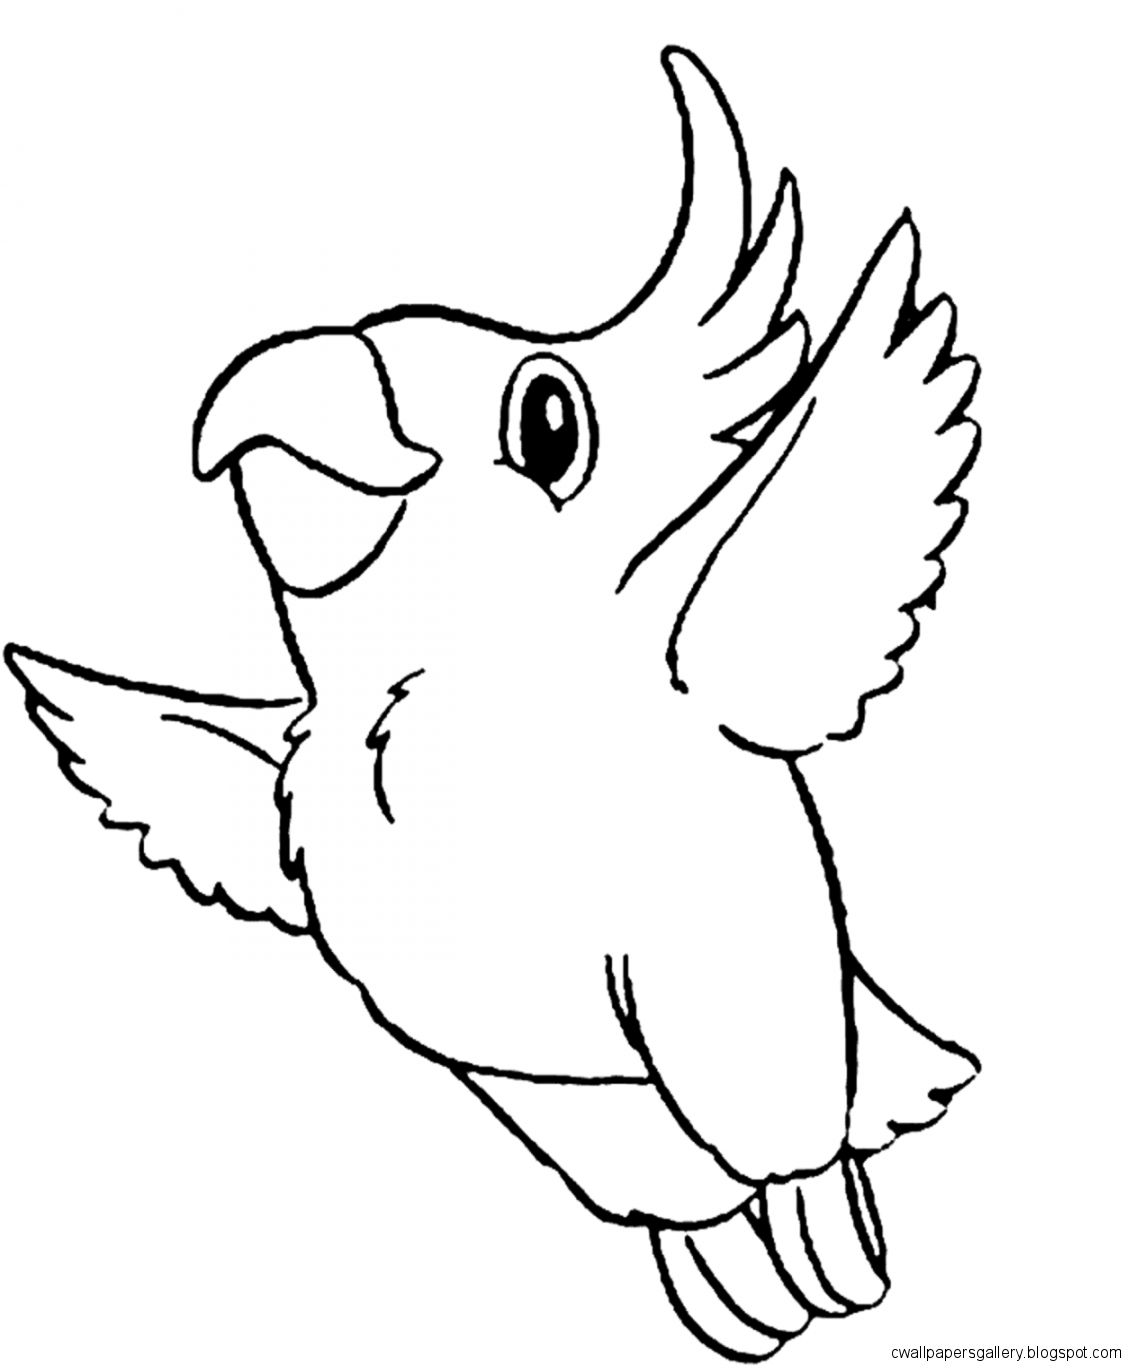 bird coloring pages - photo#29